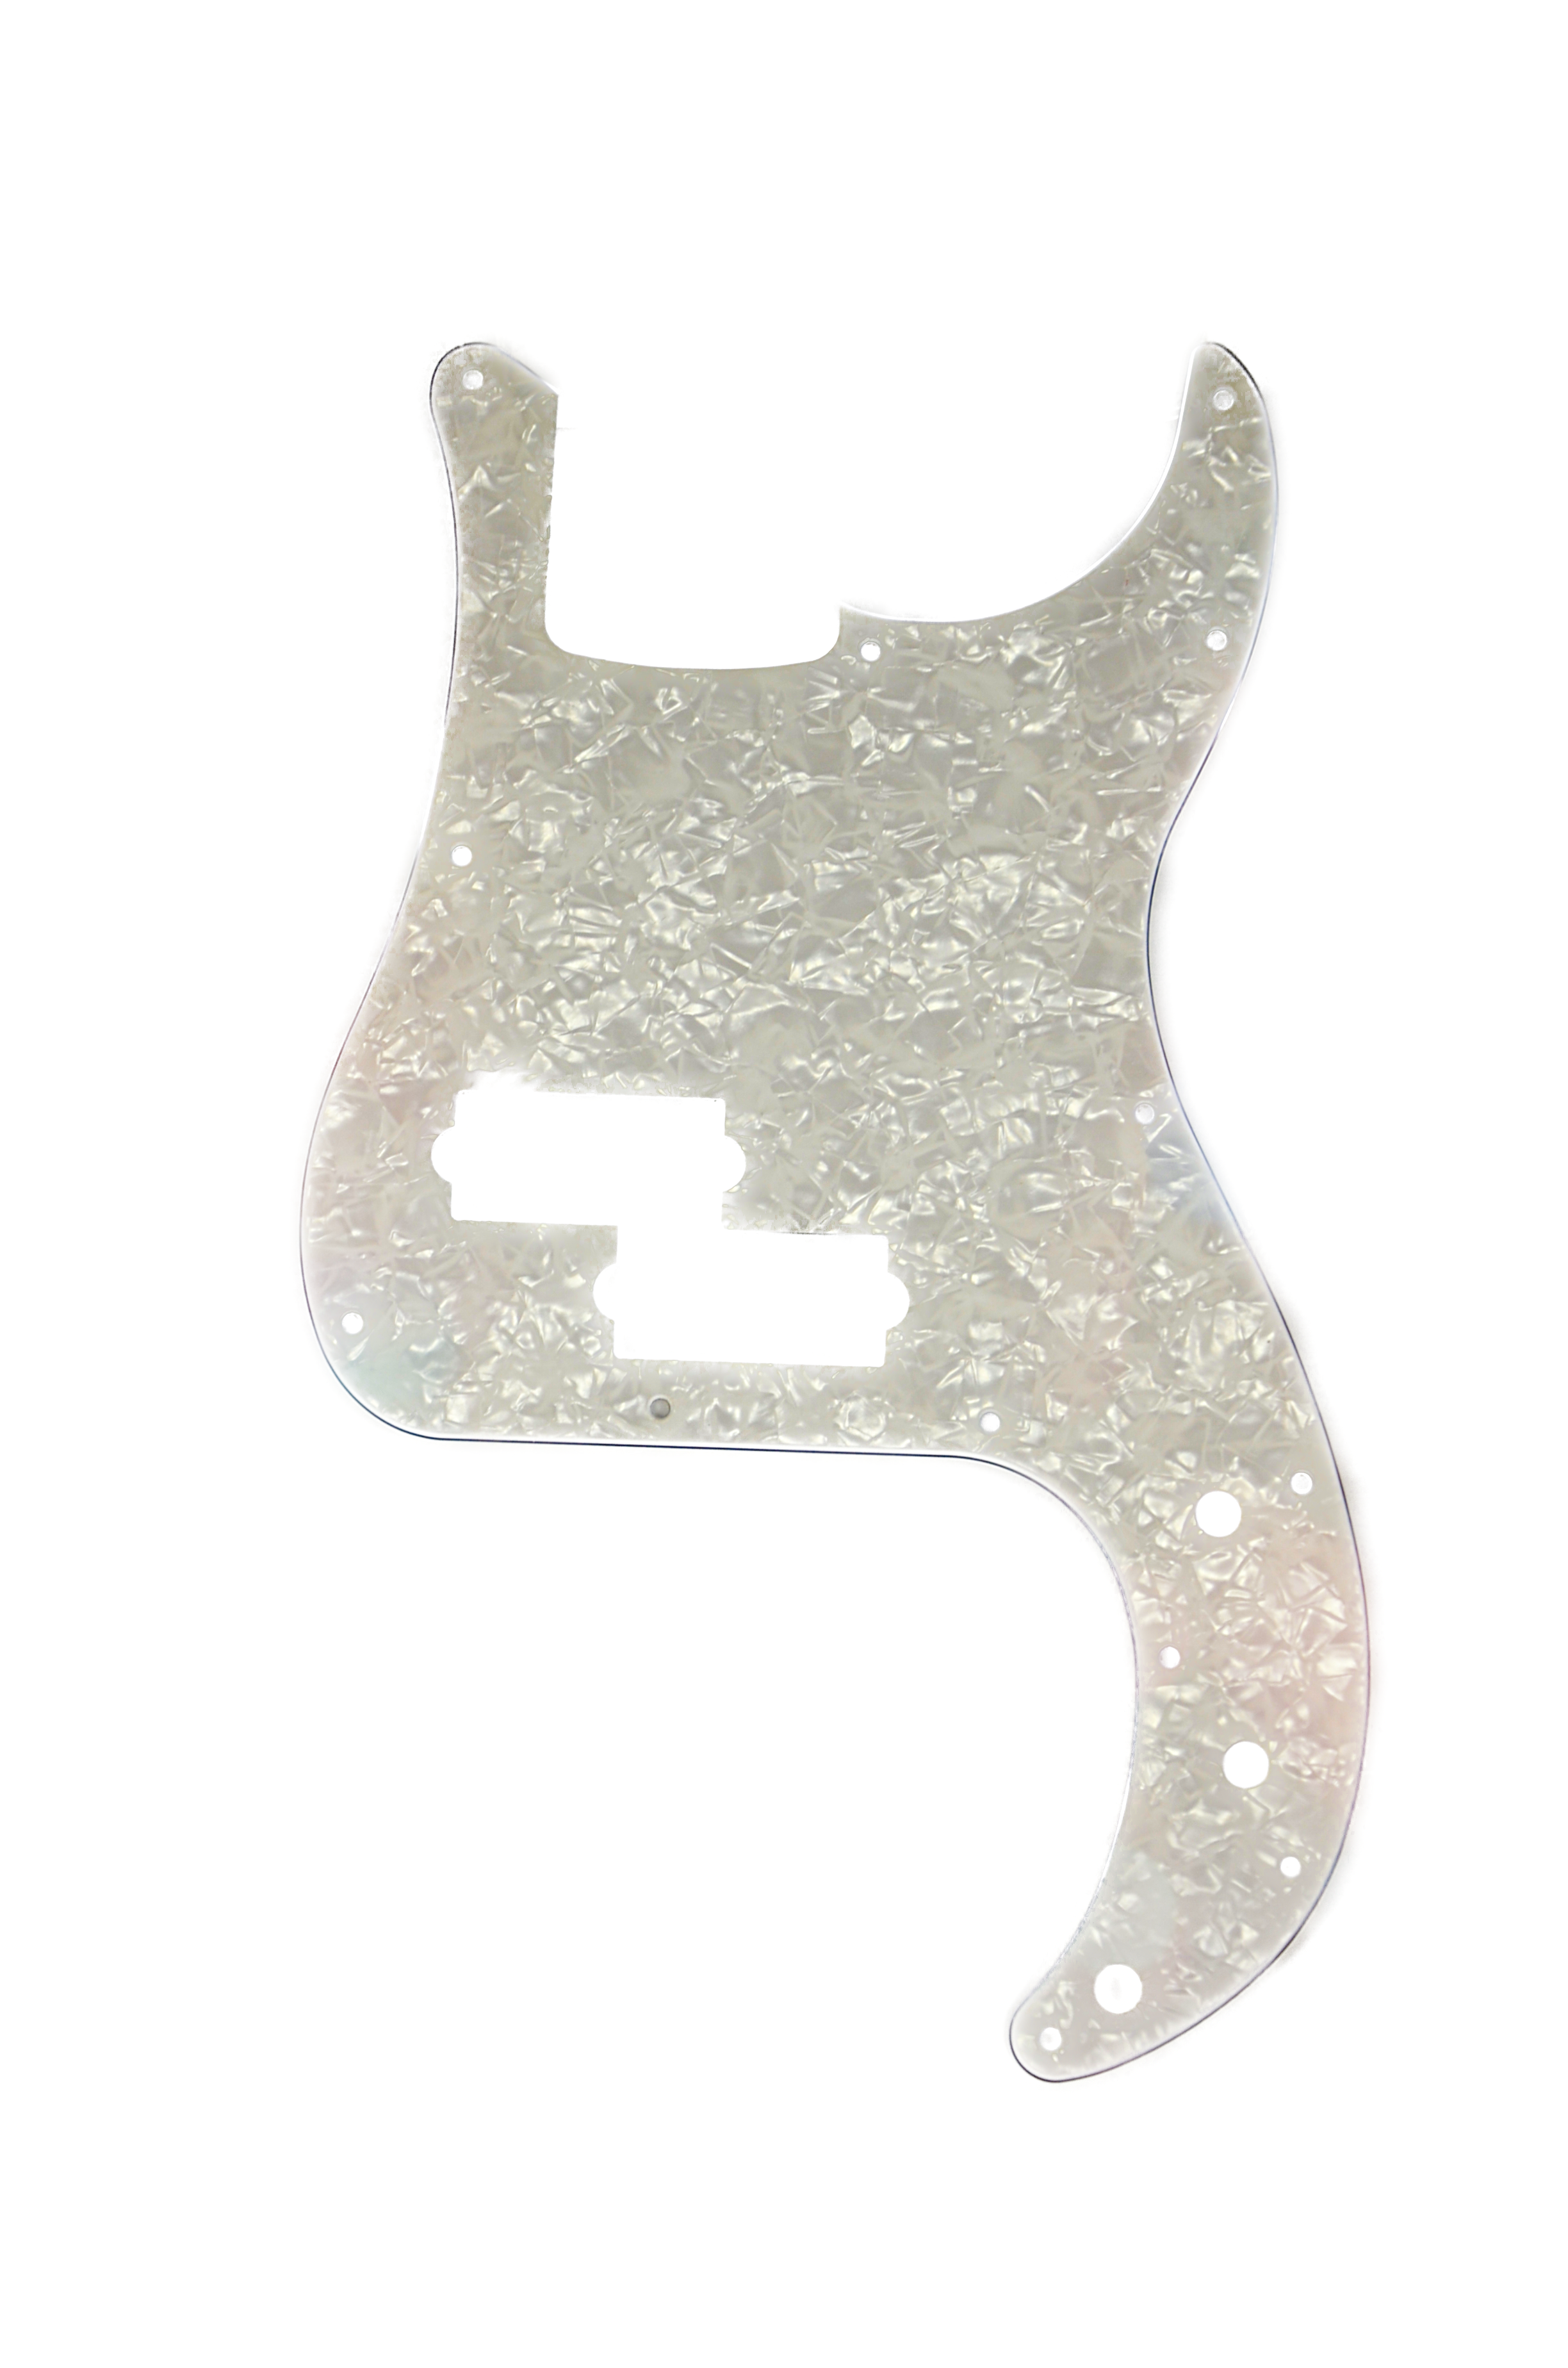 PG-0750 Pickguard for Precision Bass®